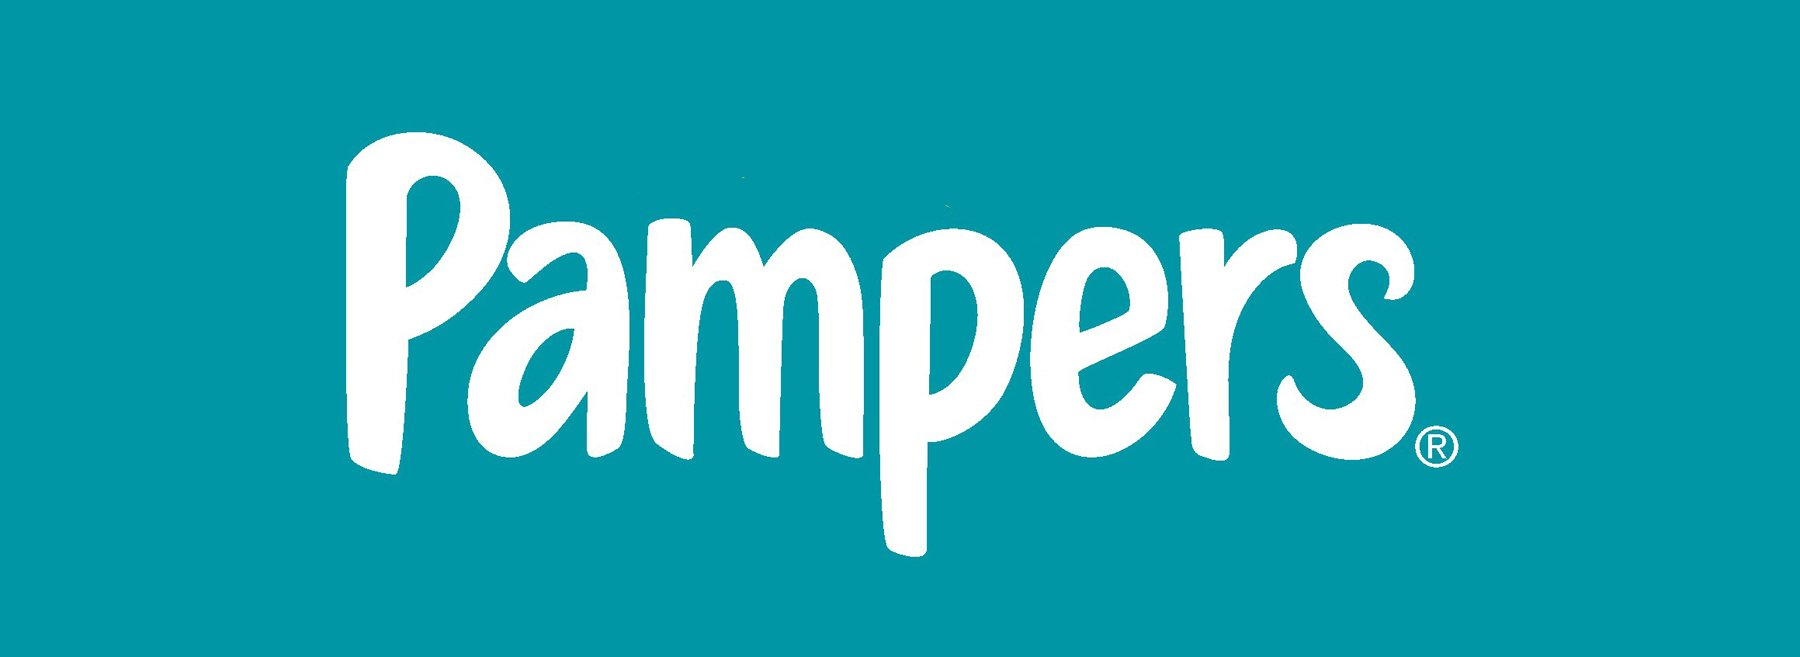 Pampers Logo Pampers Symbol Meaning History And Evolution